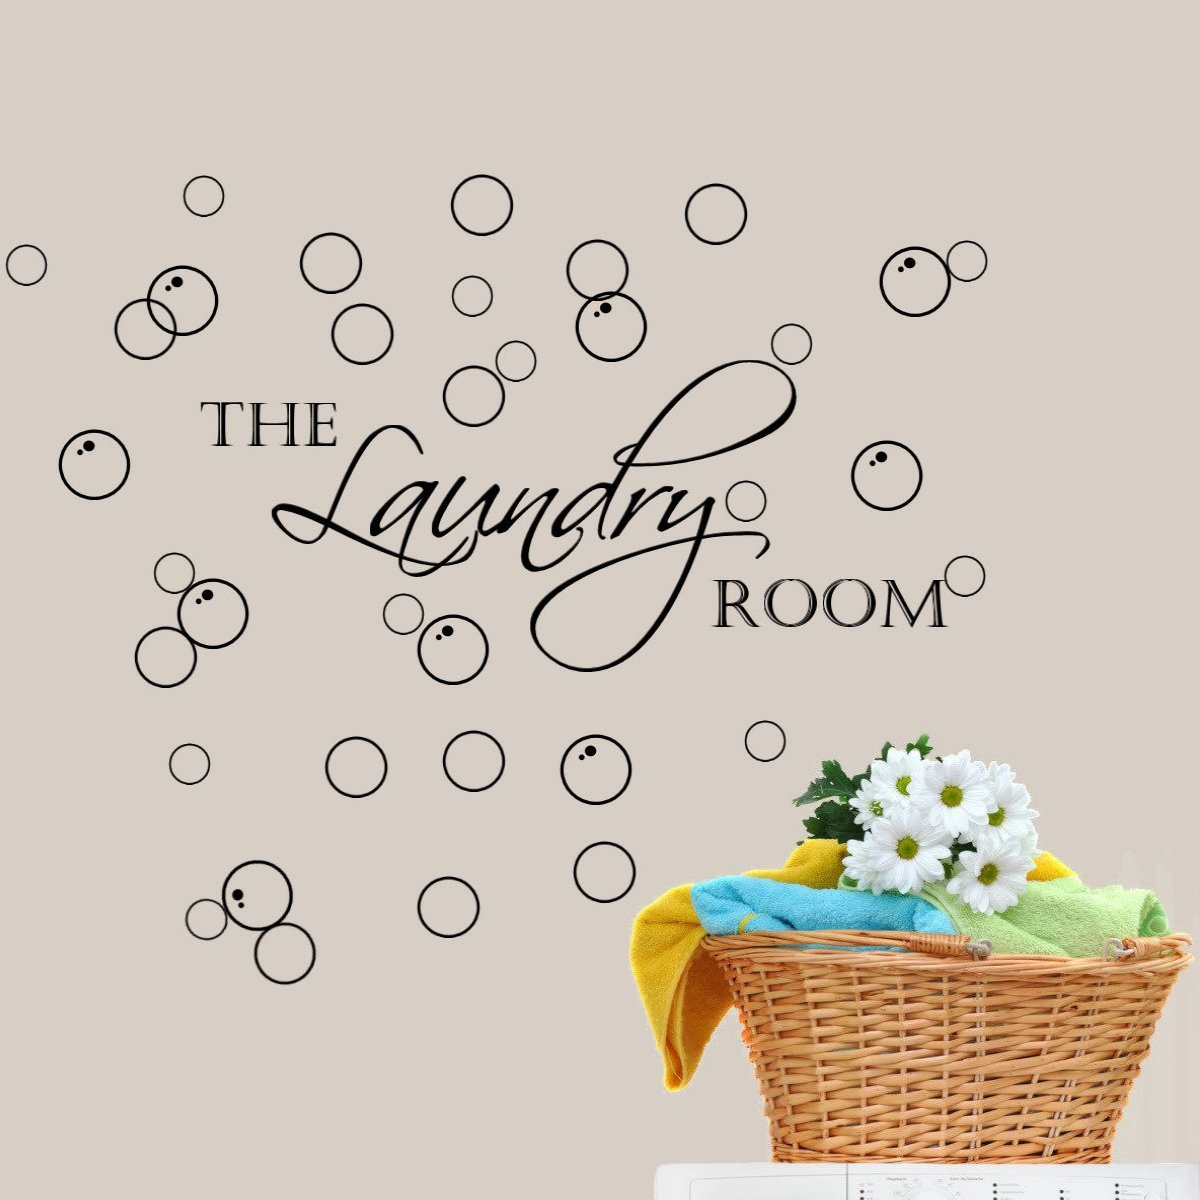 The laundry room laundry room with bubbles wall decal home decor the laundry room laundry room with bubbles wall decal home decor laundry room decor black amazon amipublicfo Images